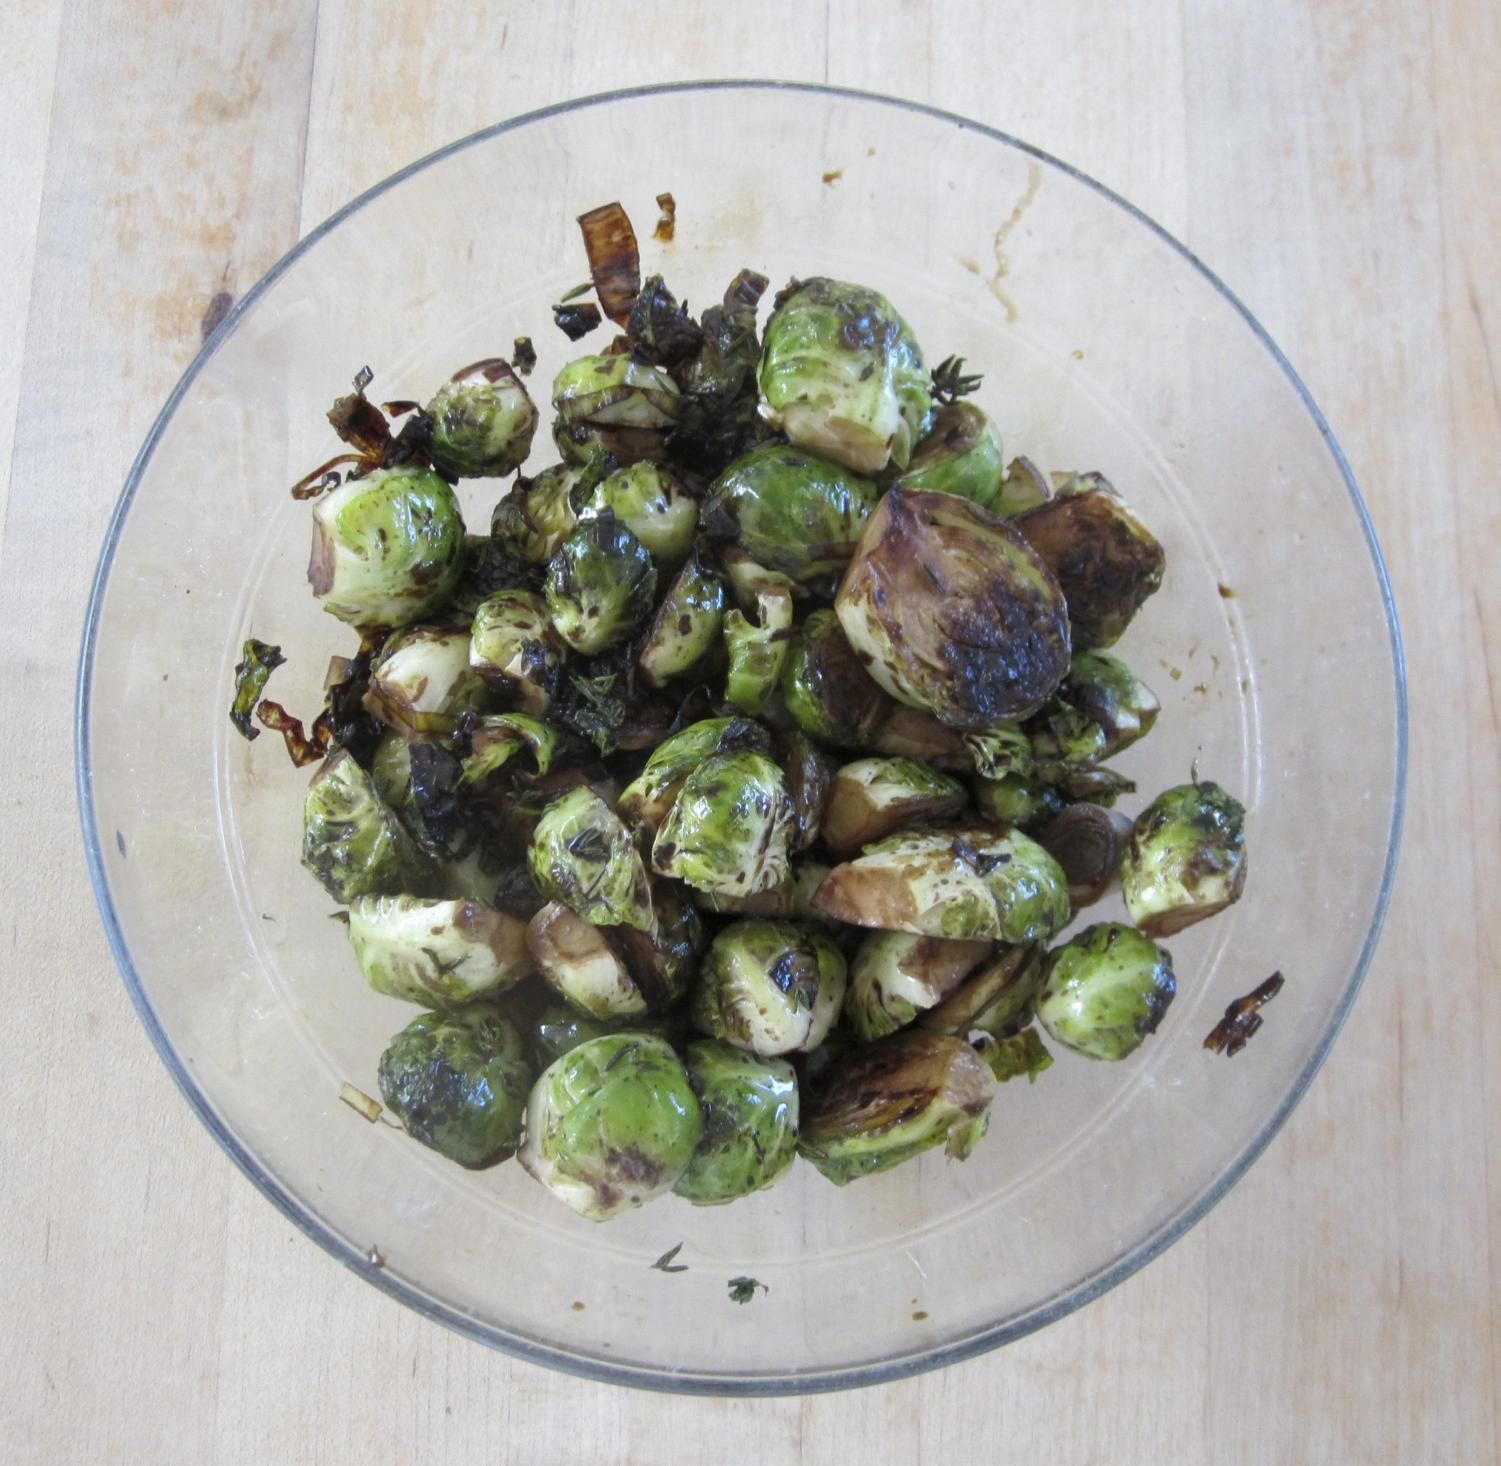 Sauteing and then roasting Brussels sprouts brings out their sweetness in this puff pastry tart recipe.